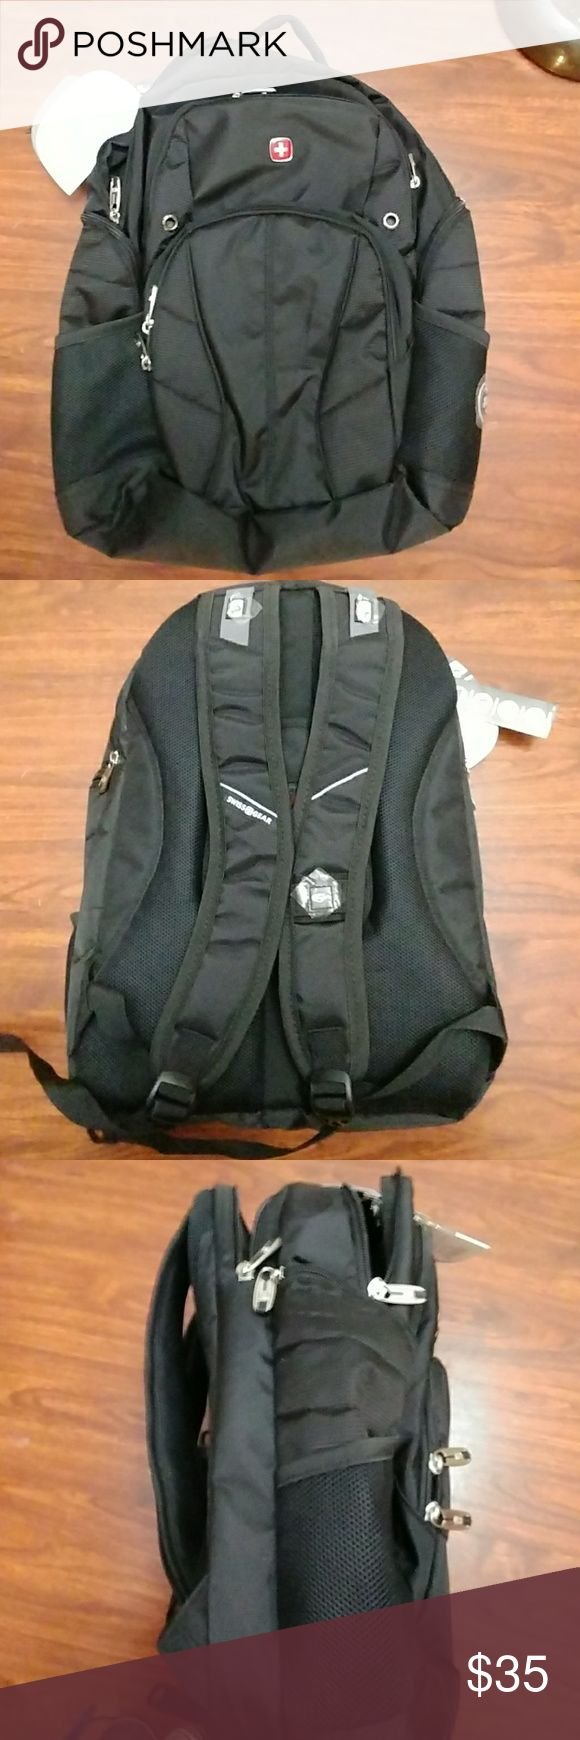 NWT Swiss Gear backpack!! NWT Swiss Gear backpack!! Black, sleek design will hold all your school or work needs! SwissGear Bags Backpacks